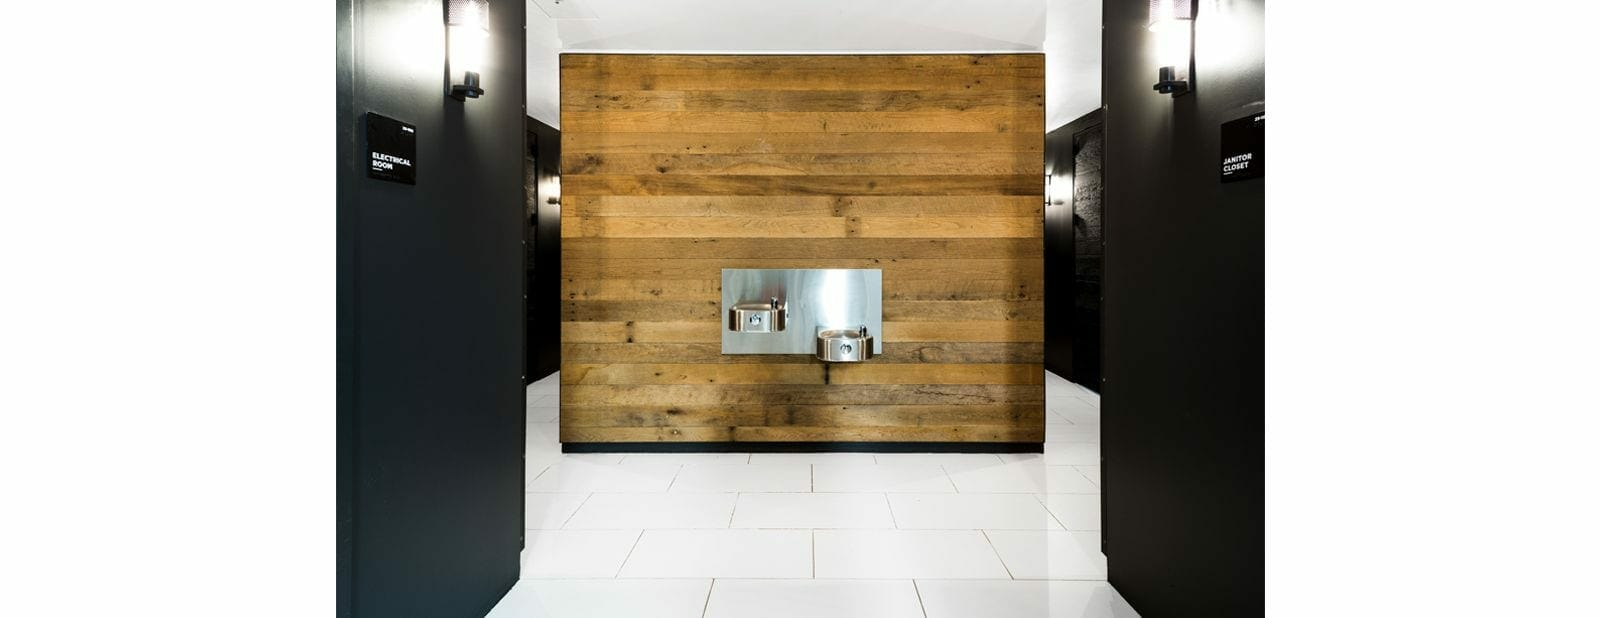 empire office reclaimed wood paneling